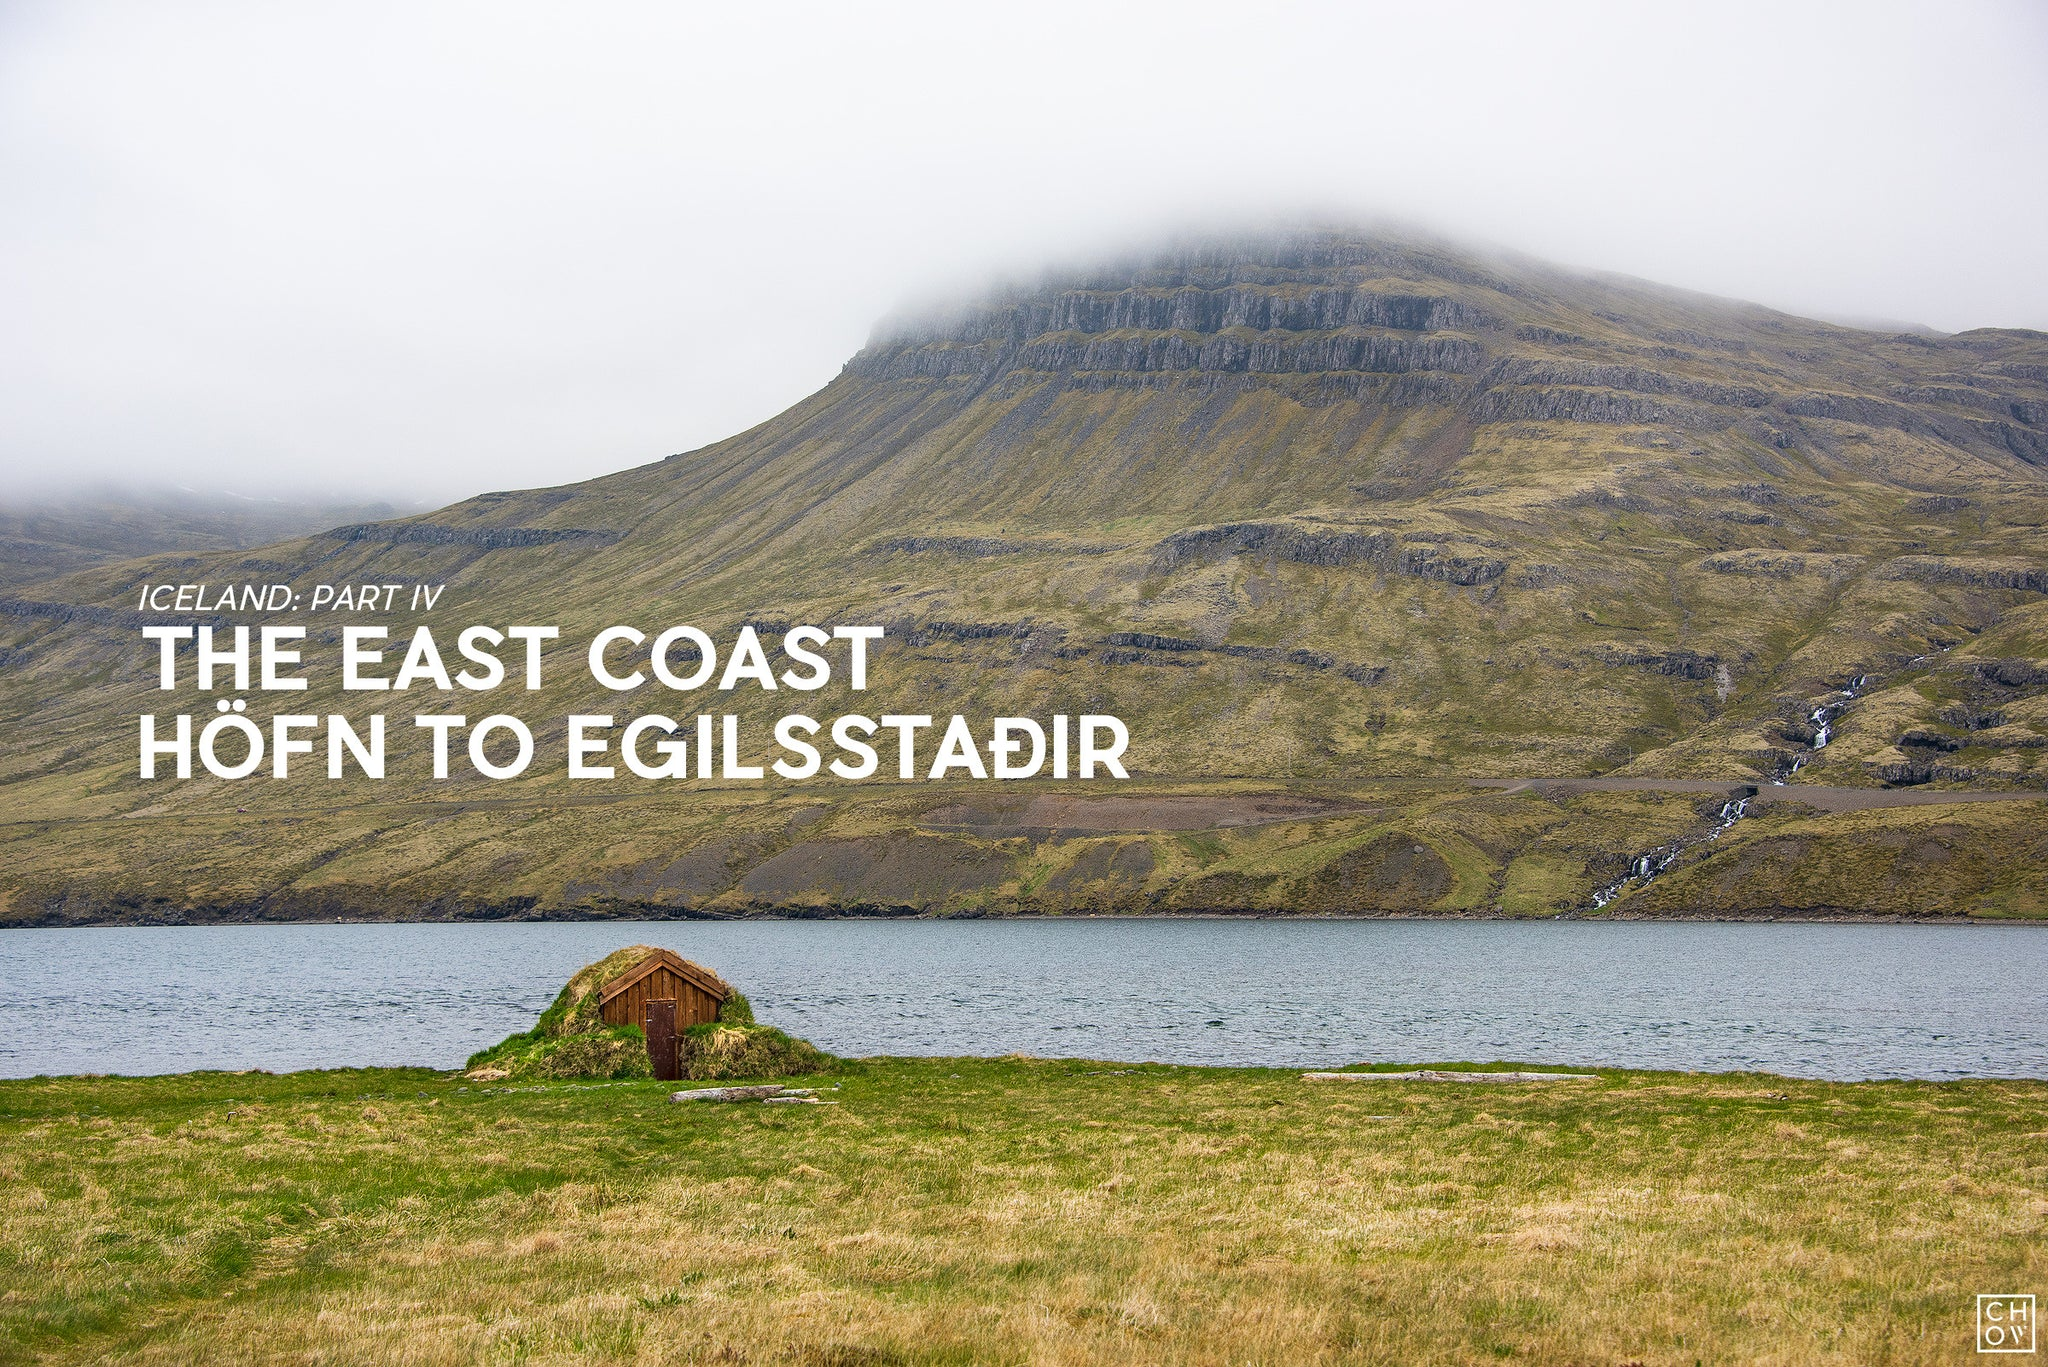 Iceland Part IV: The East Coast, Höfn to Egilsstaðir